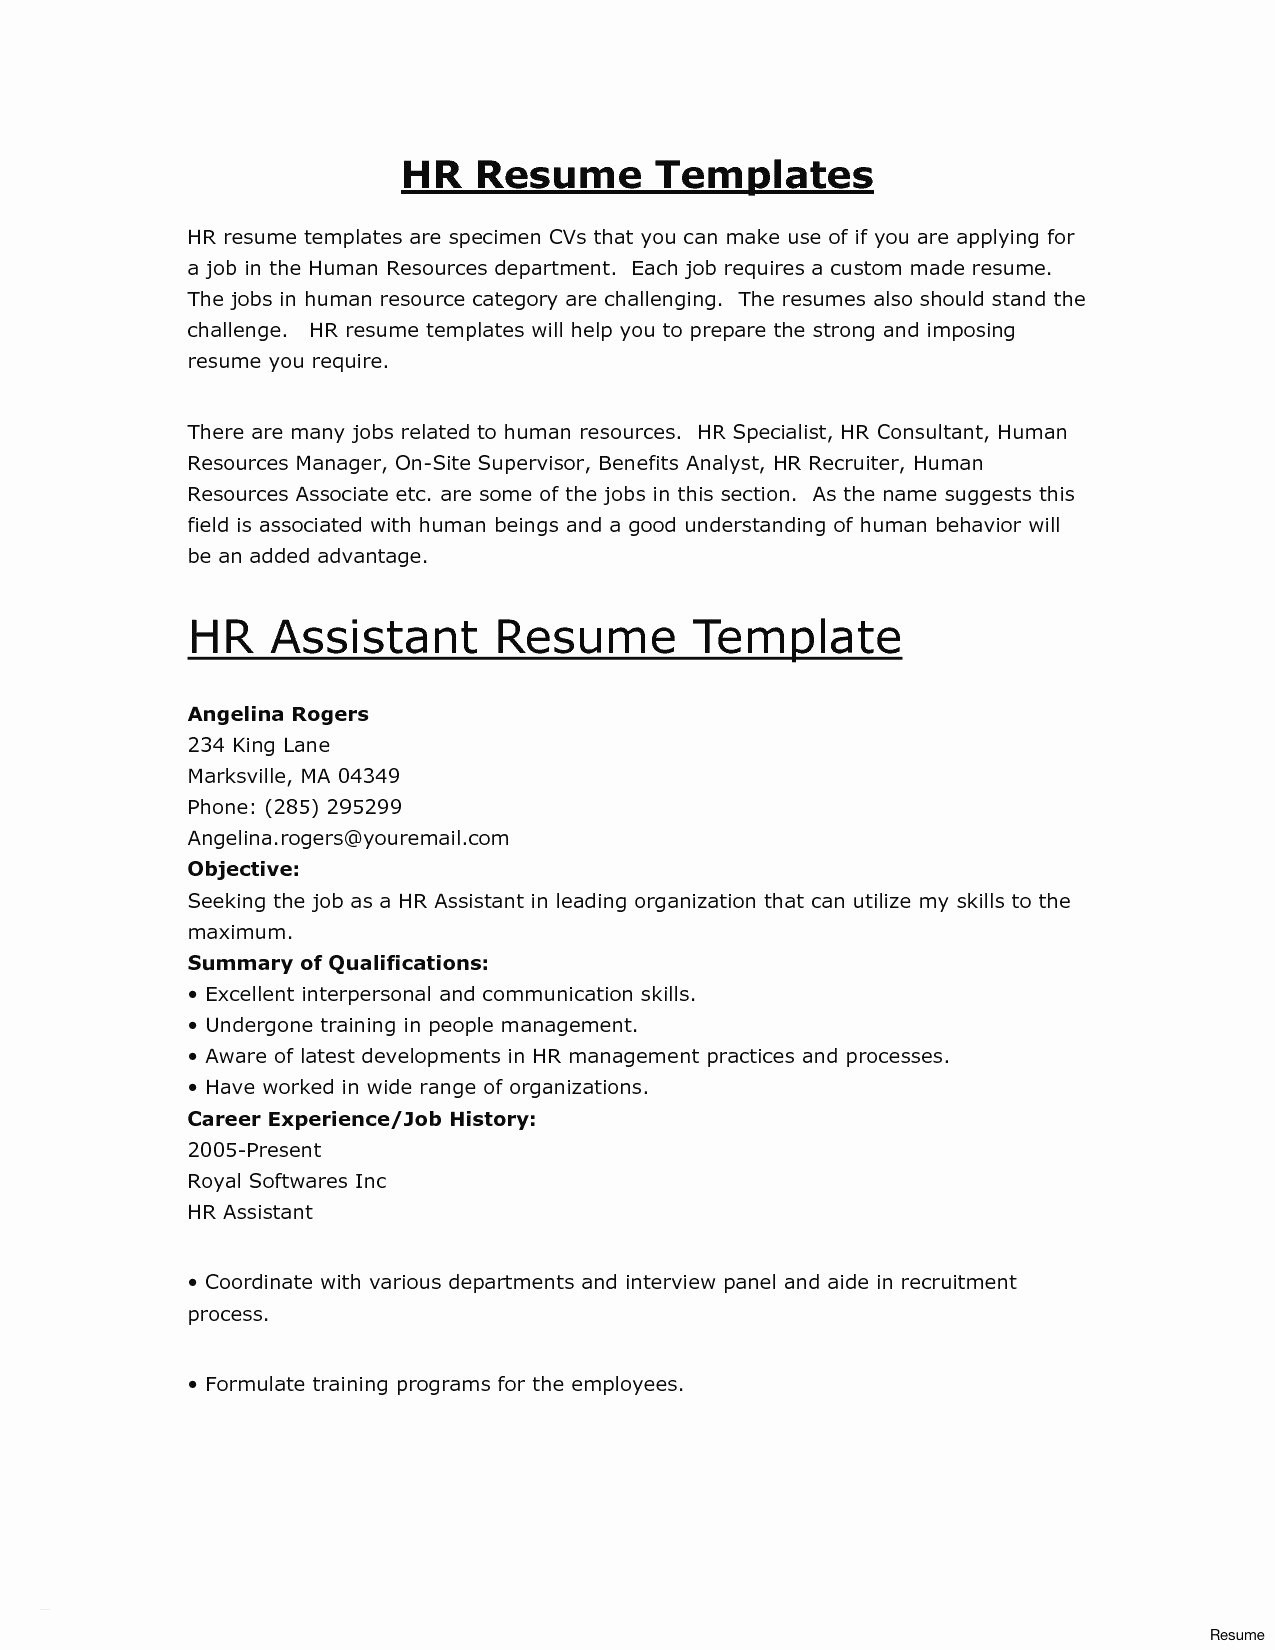 Free Online Resume Template - Download Luxury Word 2013 Resume Templates